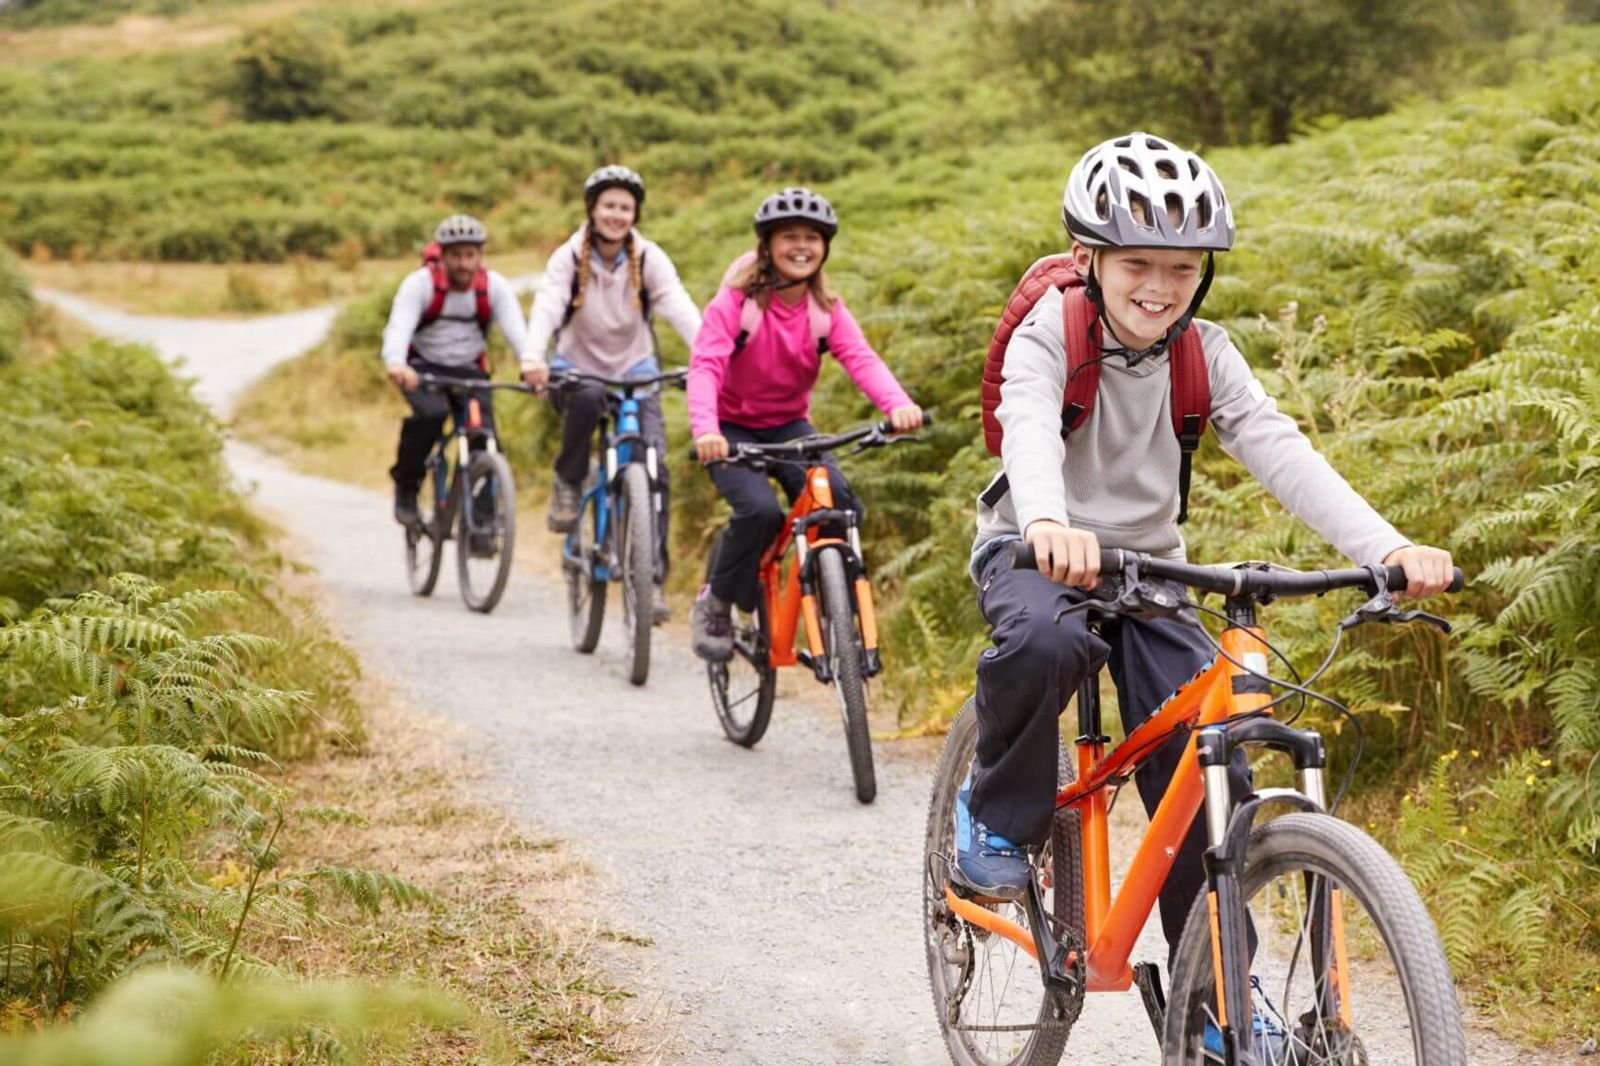 Bike Helmets To Protect From Head Injuries